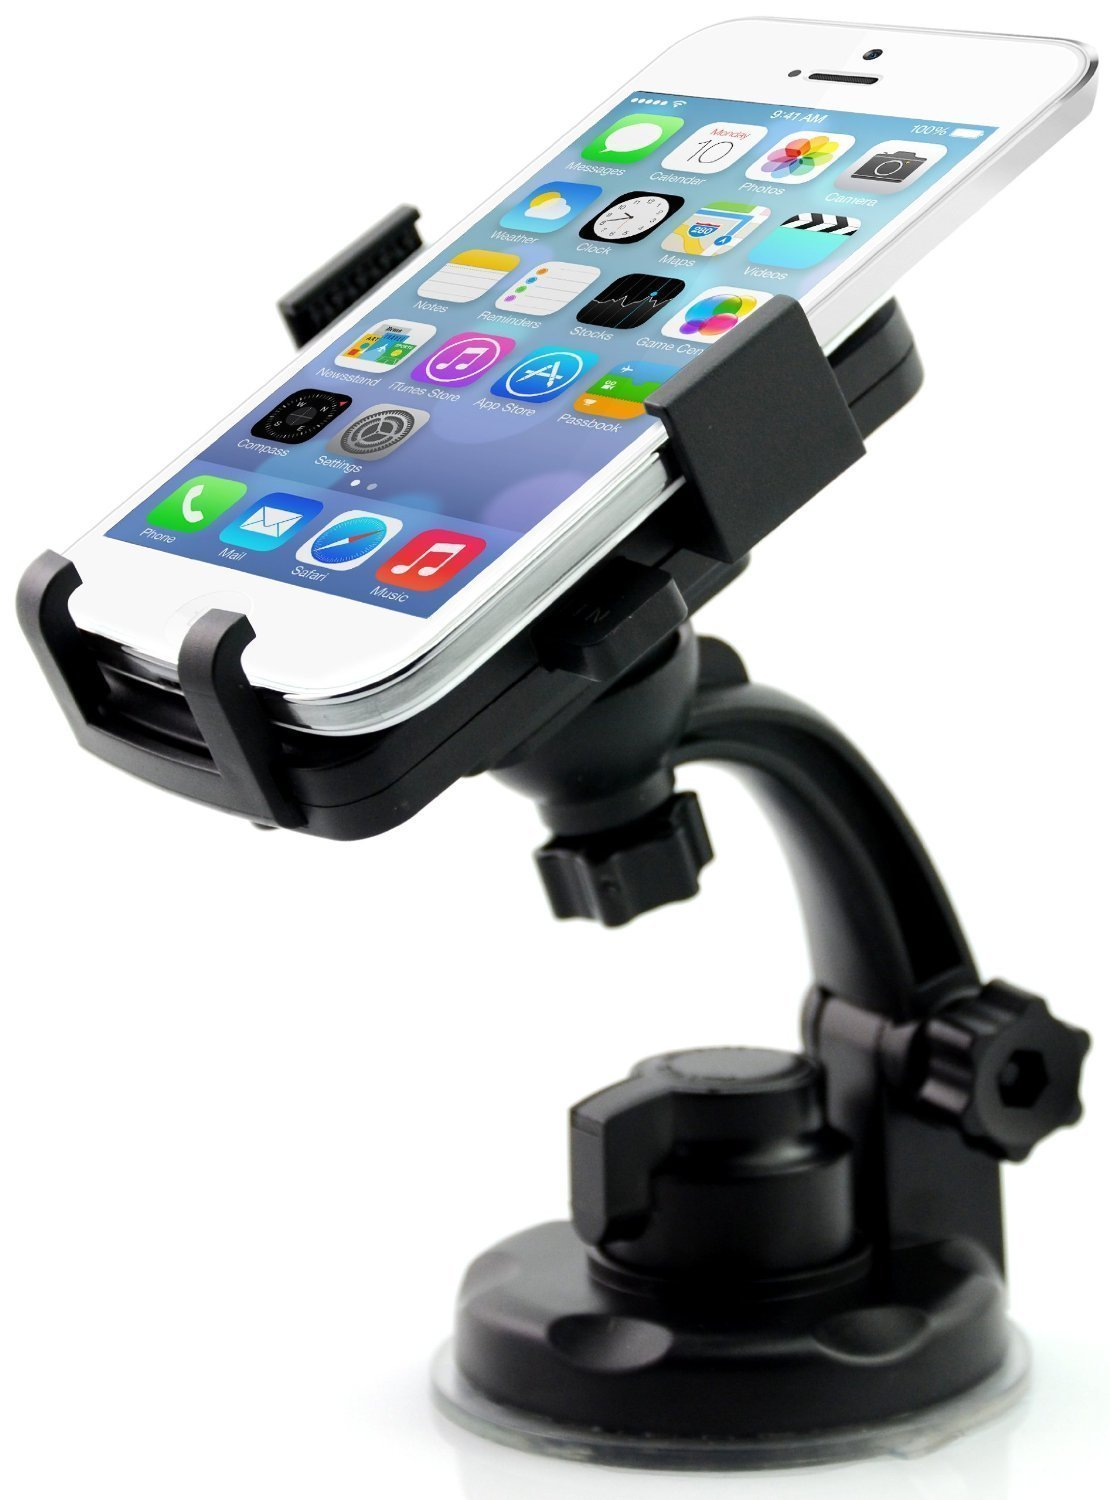 """HQF® Universal Windshield & Dashboard Car Mount Cradle Holder for iPhone 6/6Plus/5S, Galaxy Note 3/Note 2/S4/S3/S2, HTC One M8, Nexus 4/Nexus 5, BlackBerry Z10/Z30, Tablets(2.28""""-4.72"""" Extendable)-Black"""